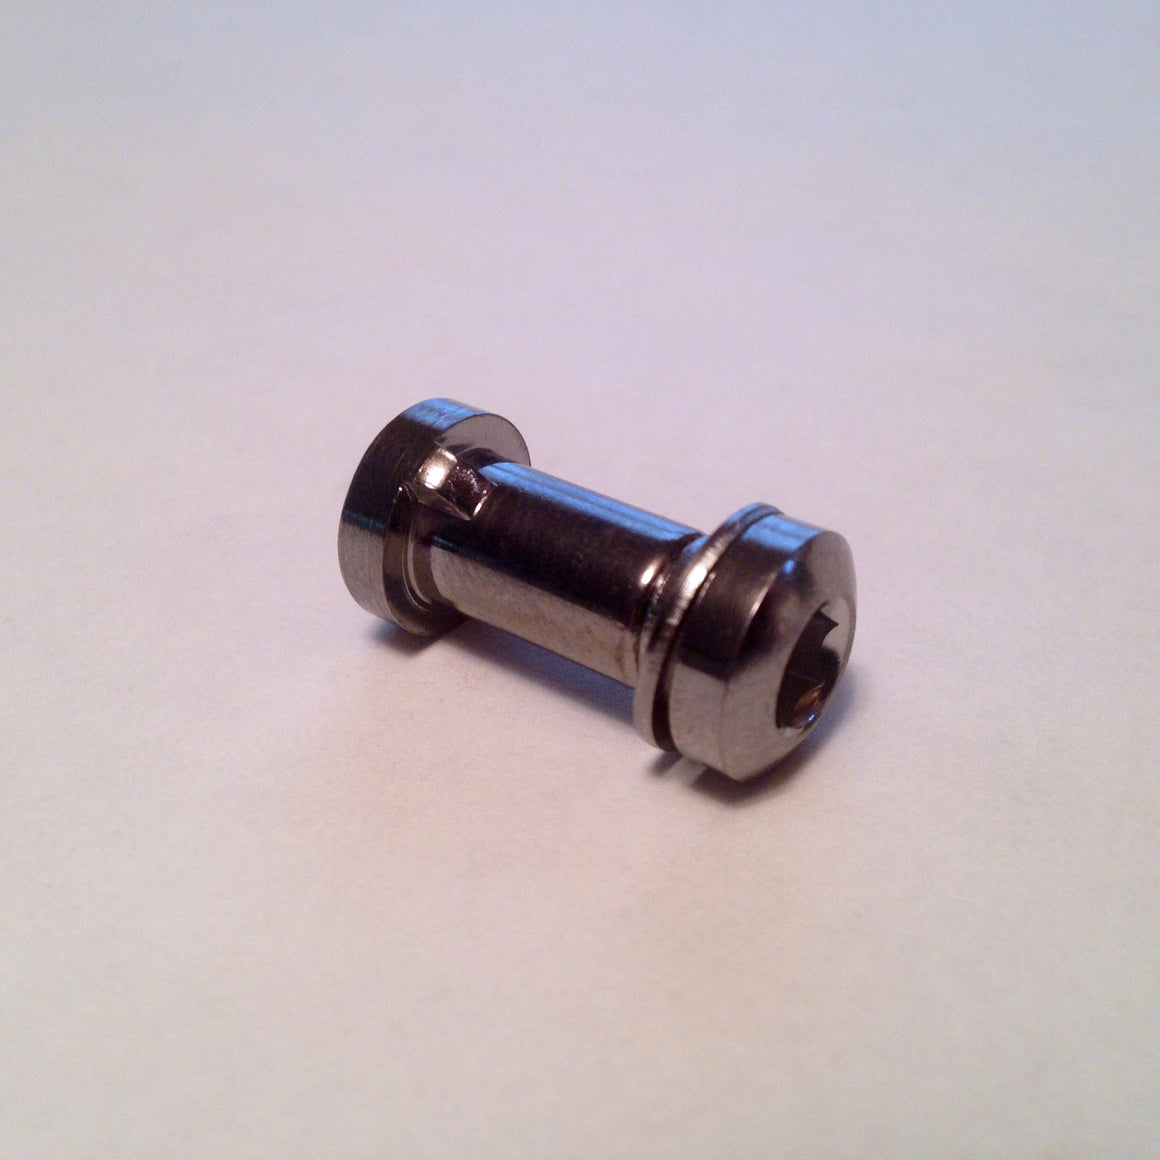 Seatpost binder bolt - 16mm